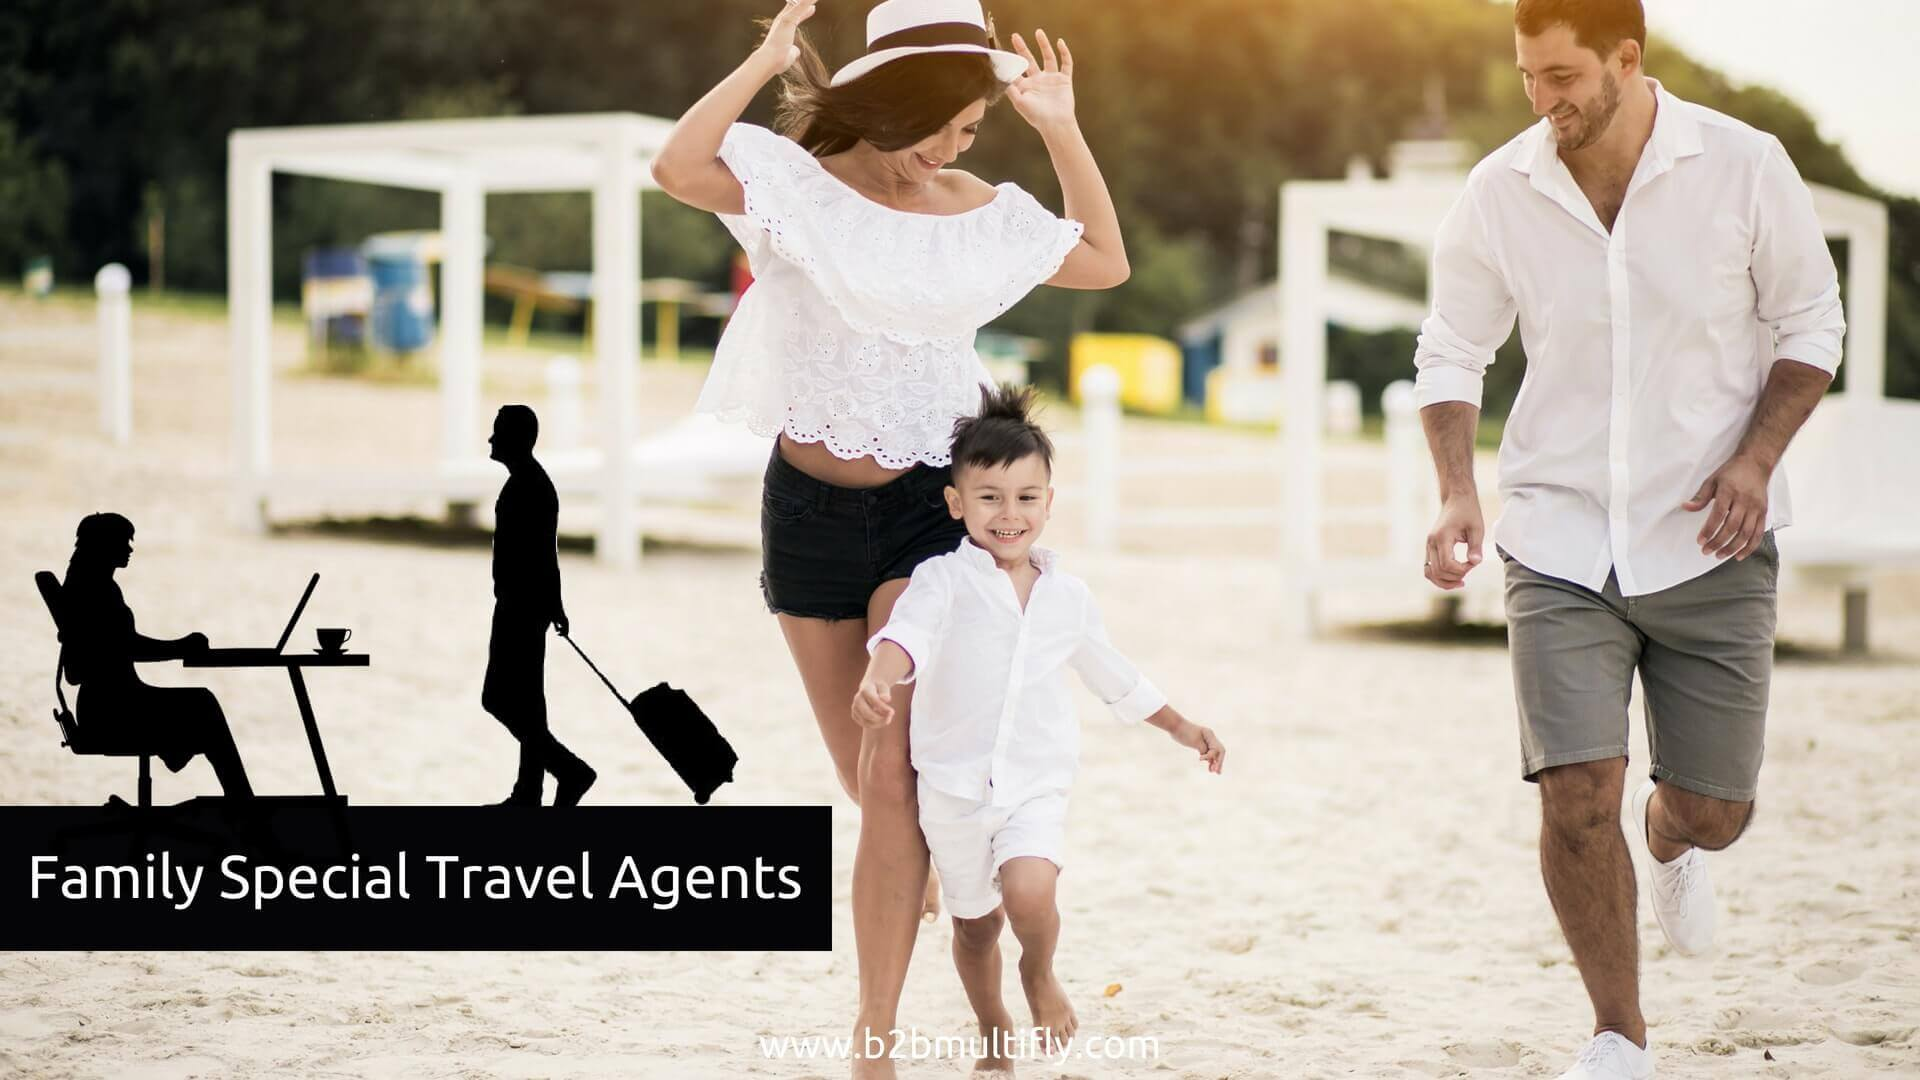 family special travel agents india